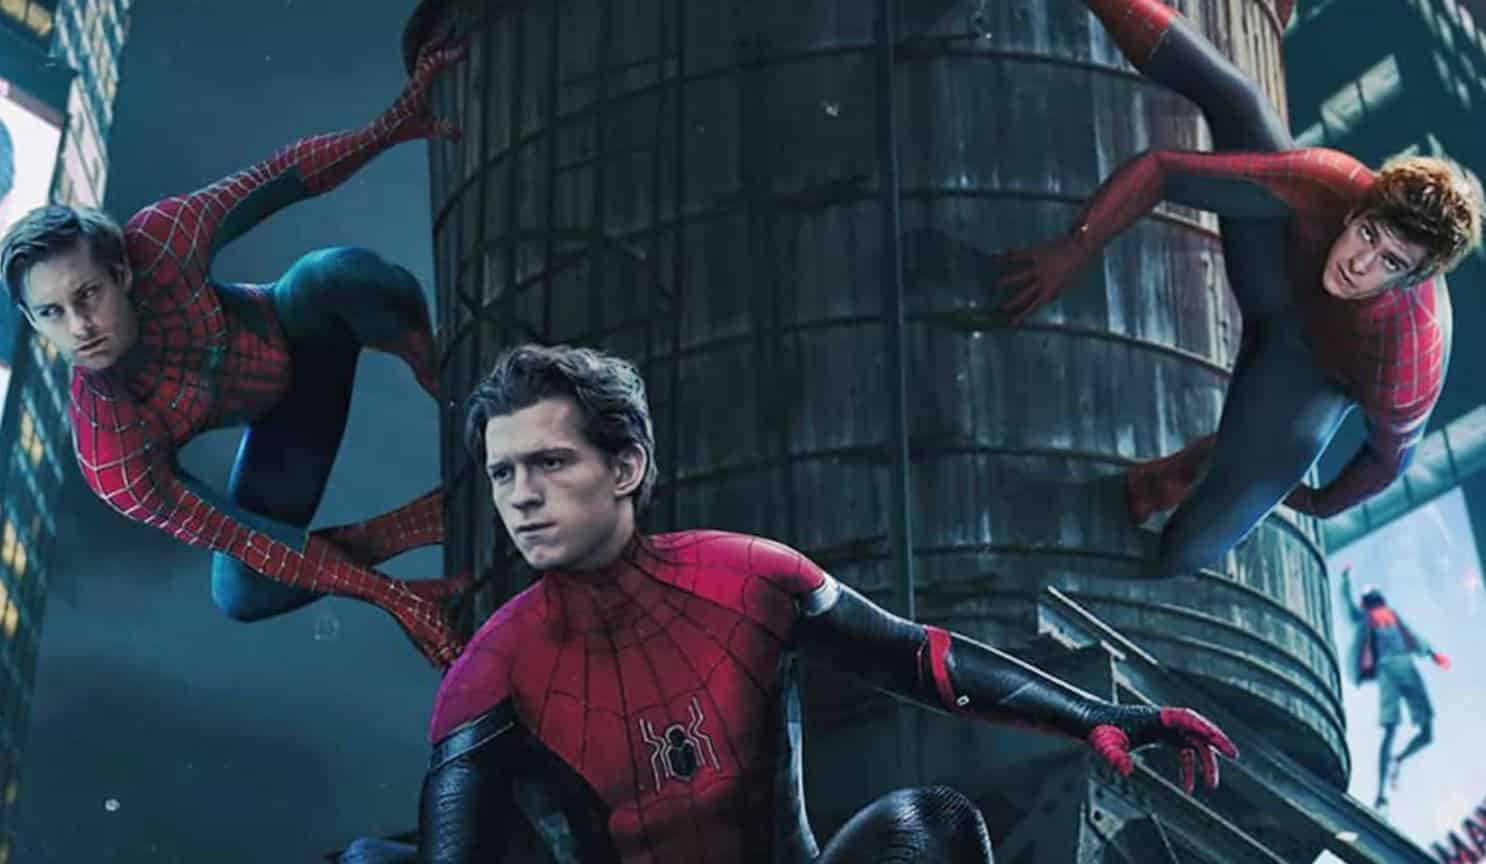 Tobey Maguire and Andrew Garfield On Set of Spider-Man No Way Home Check Leaked Images